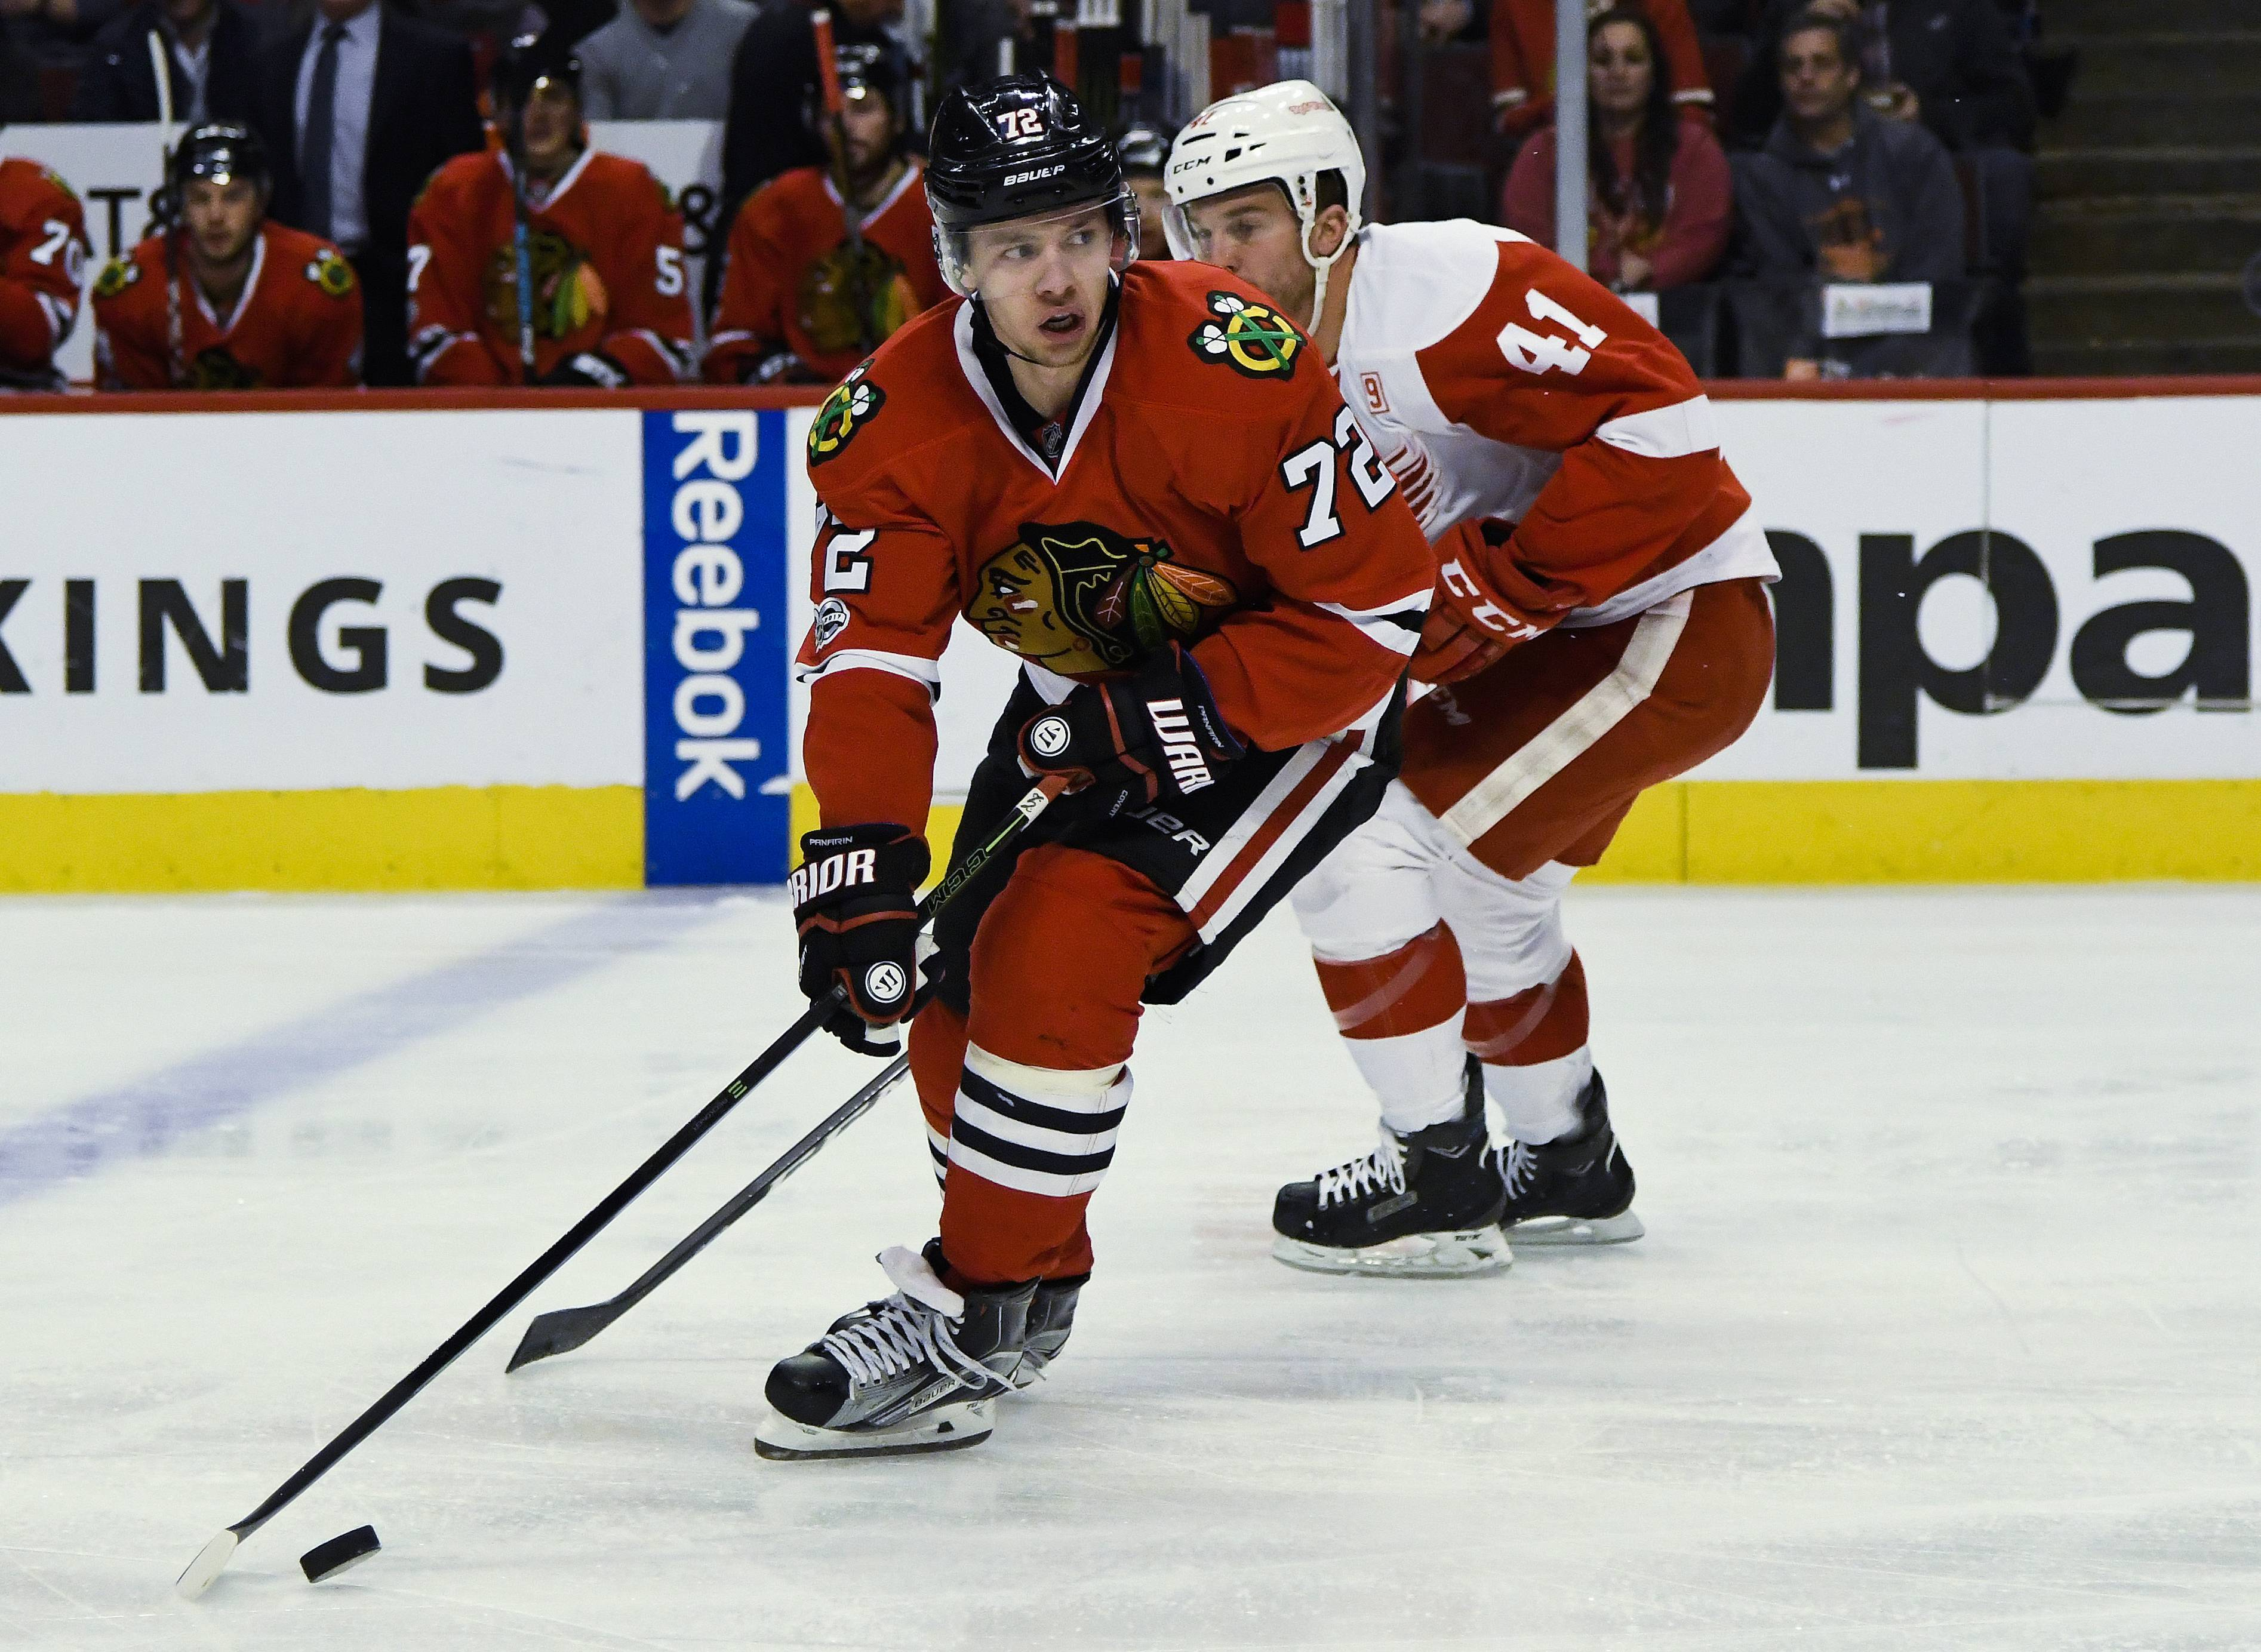 Chicago Blackhawks left wing Artemi Panarin (72) looks to pass the puck against Detroit Red Wings center Luke Glendening (41) during the first period of an NHL hockey game Tuesday, Jan. 10, 2017, in Chicago.